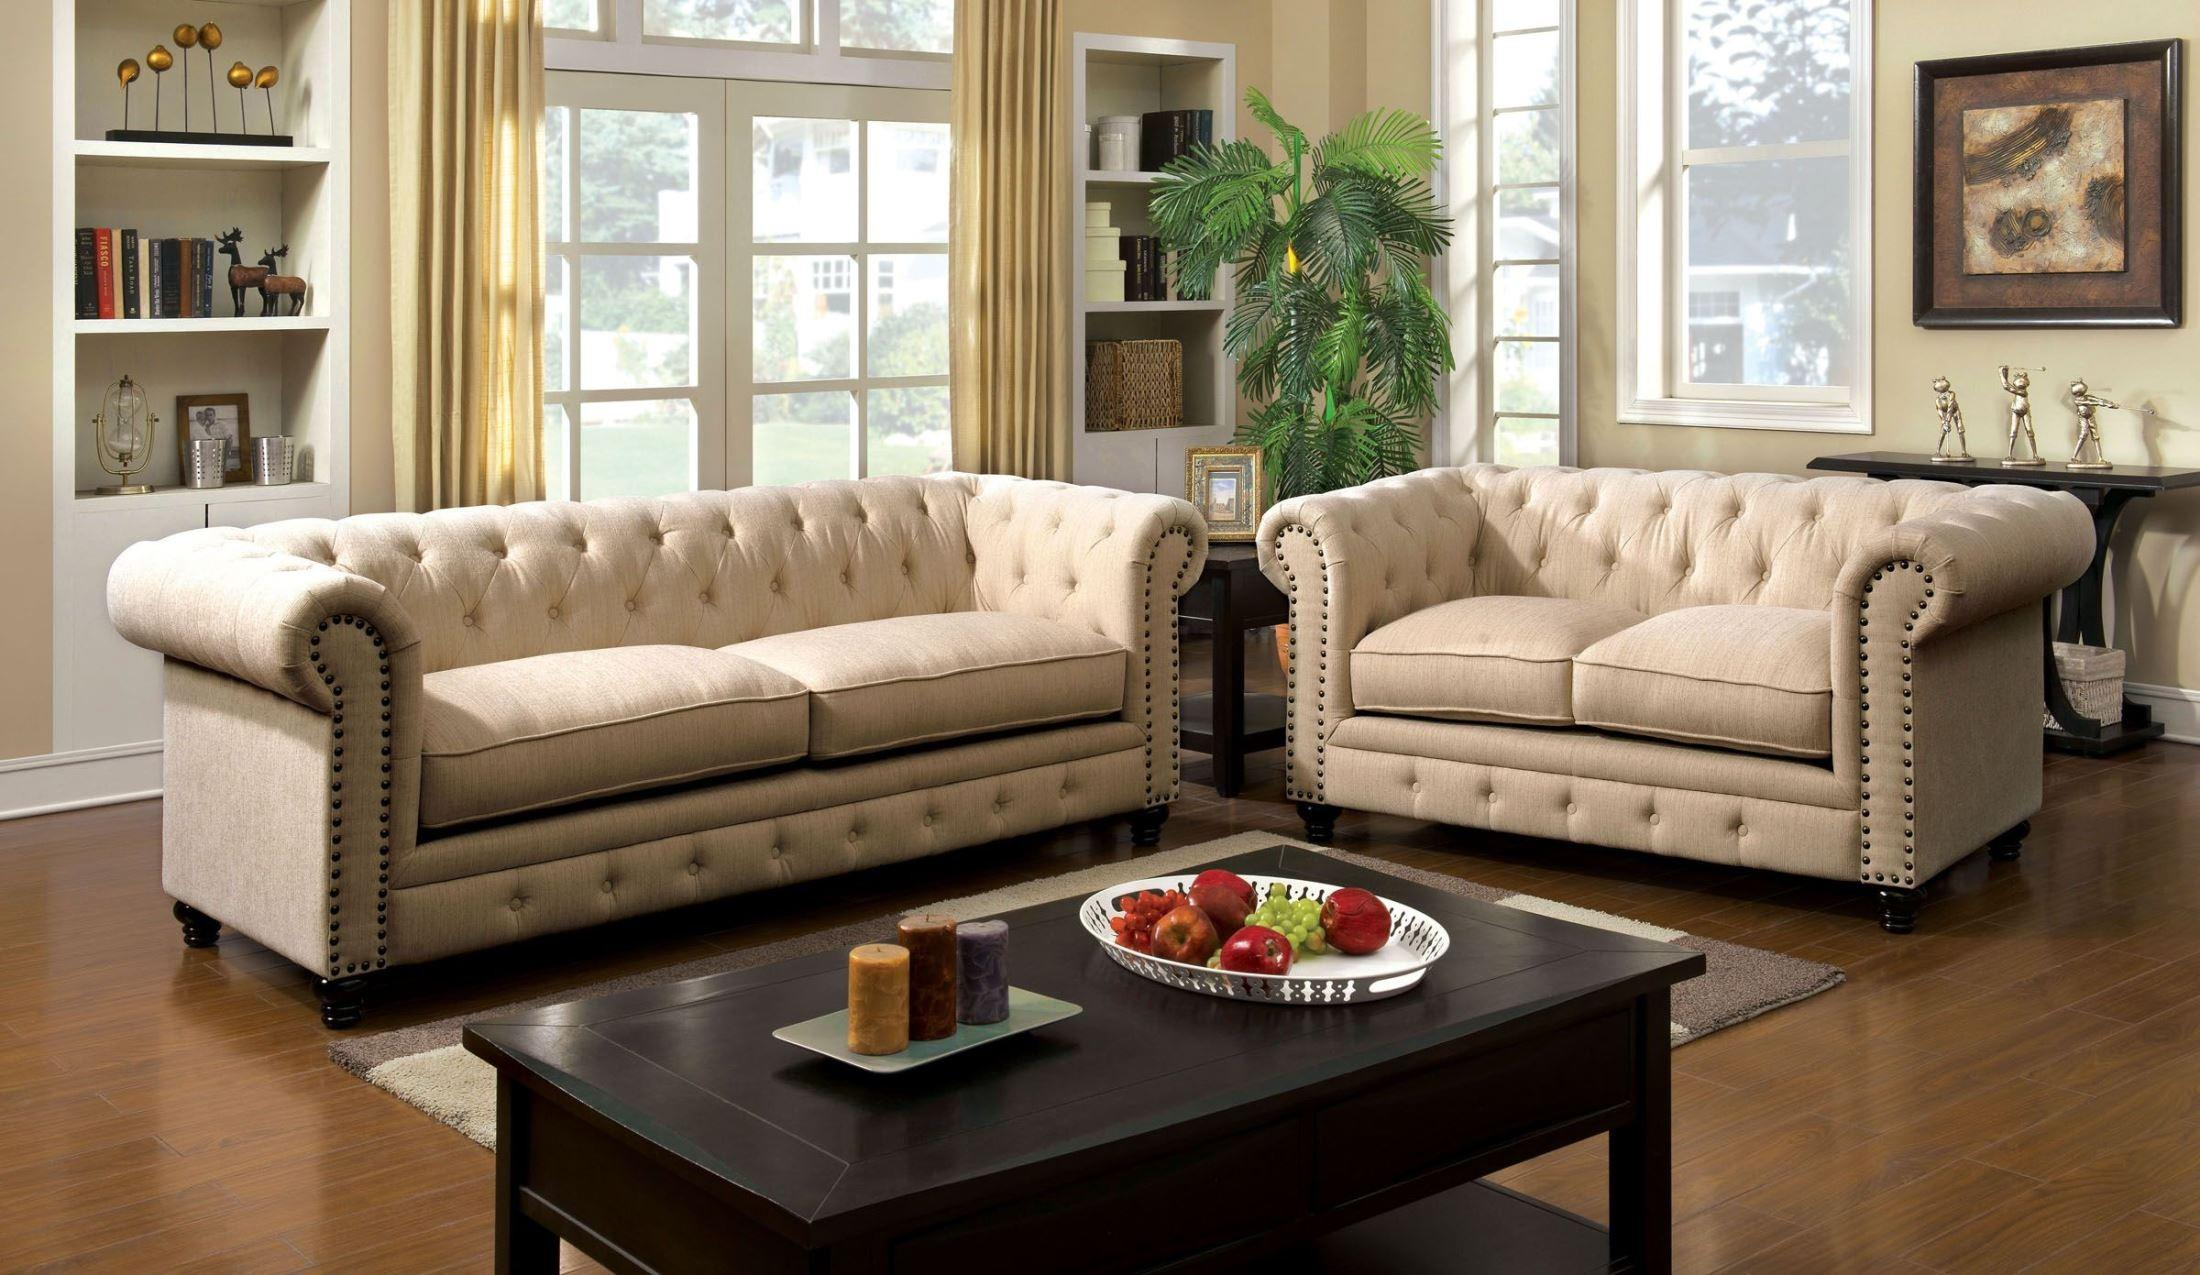 Furniture of America / Import Direct Stanford Sofa & Love Seat - Item Number: CM6269IV-SF+CM6269IV-LV